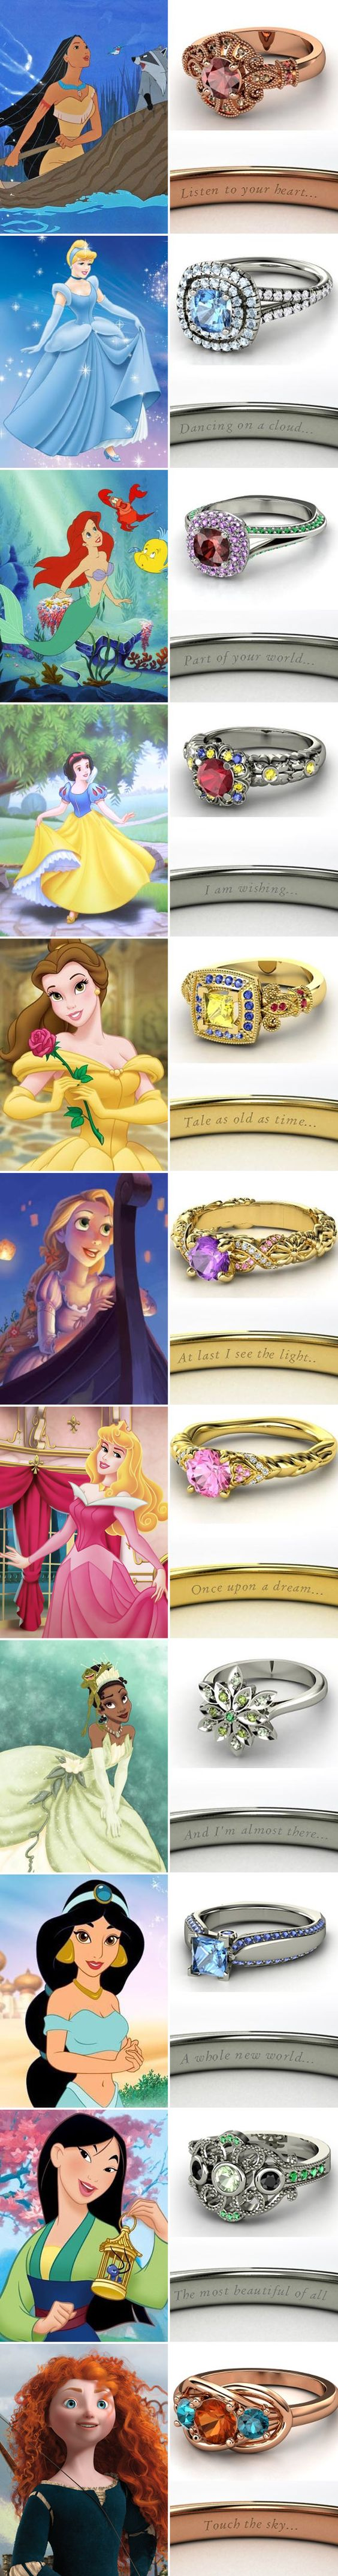 Disney princess wedding rings and more ideas for diehard #DisneyPrincess fans!: